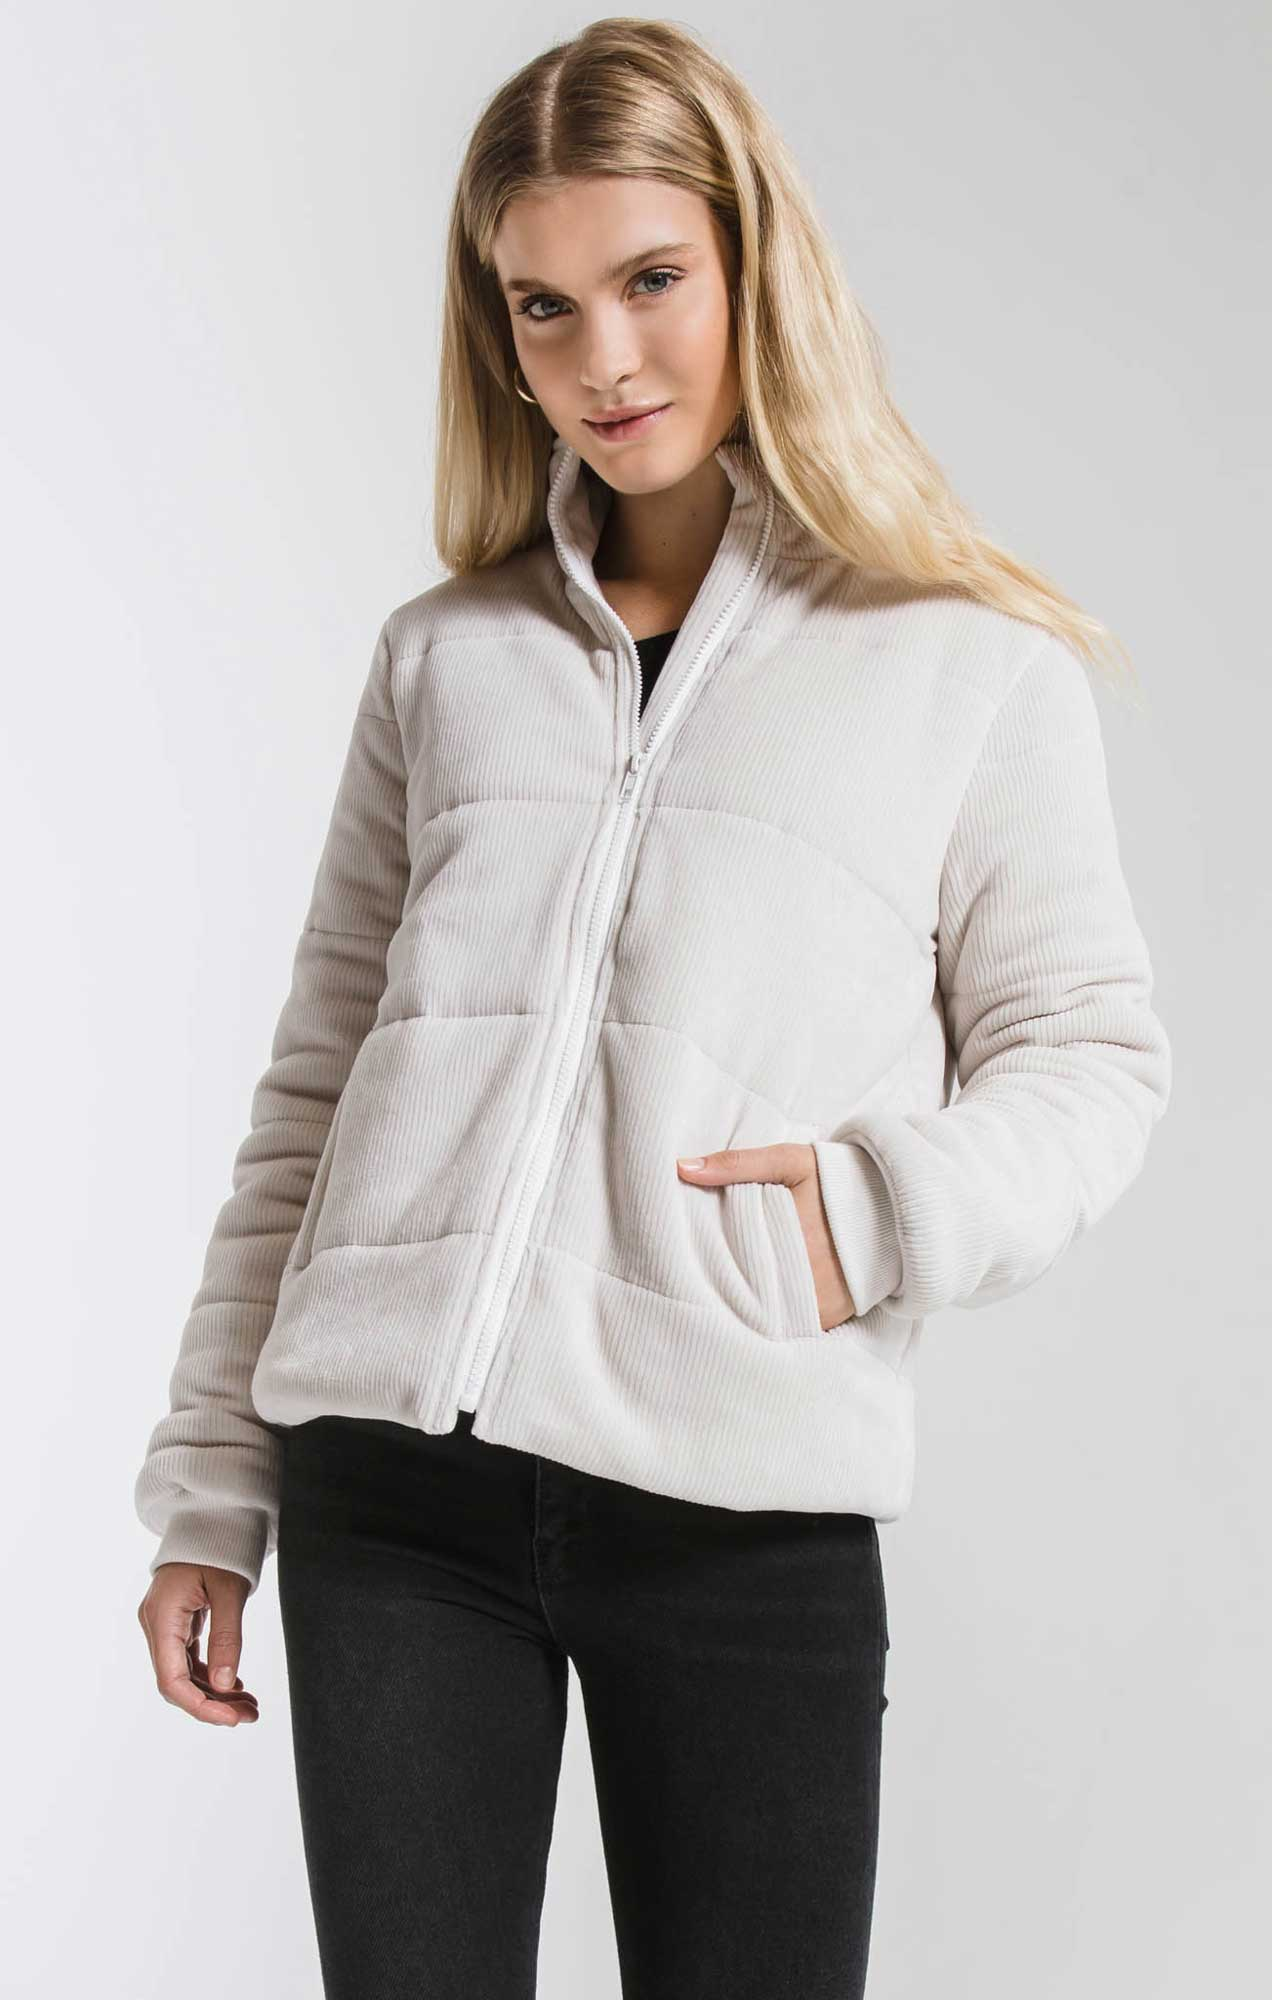 Jackets Corduroy Puffer Jacket Champagne Mist